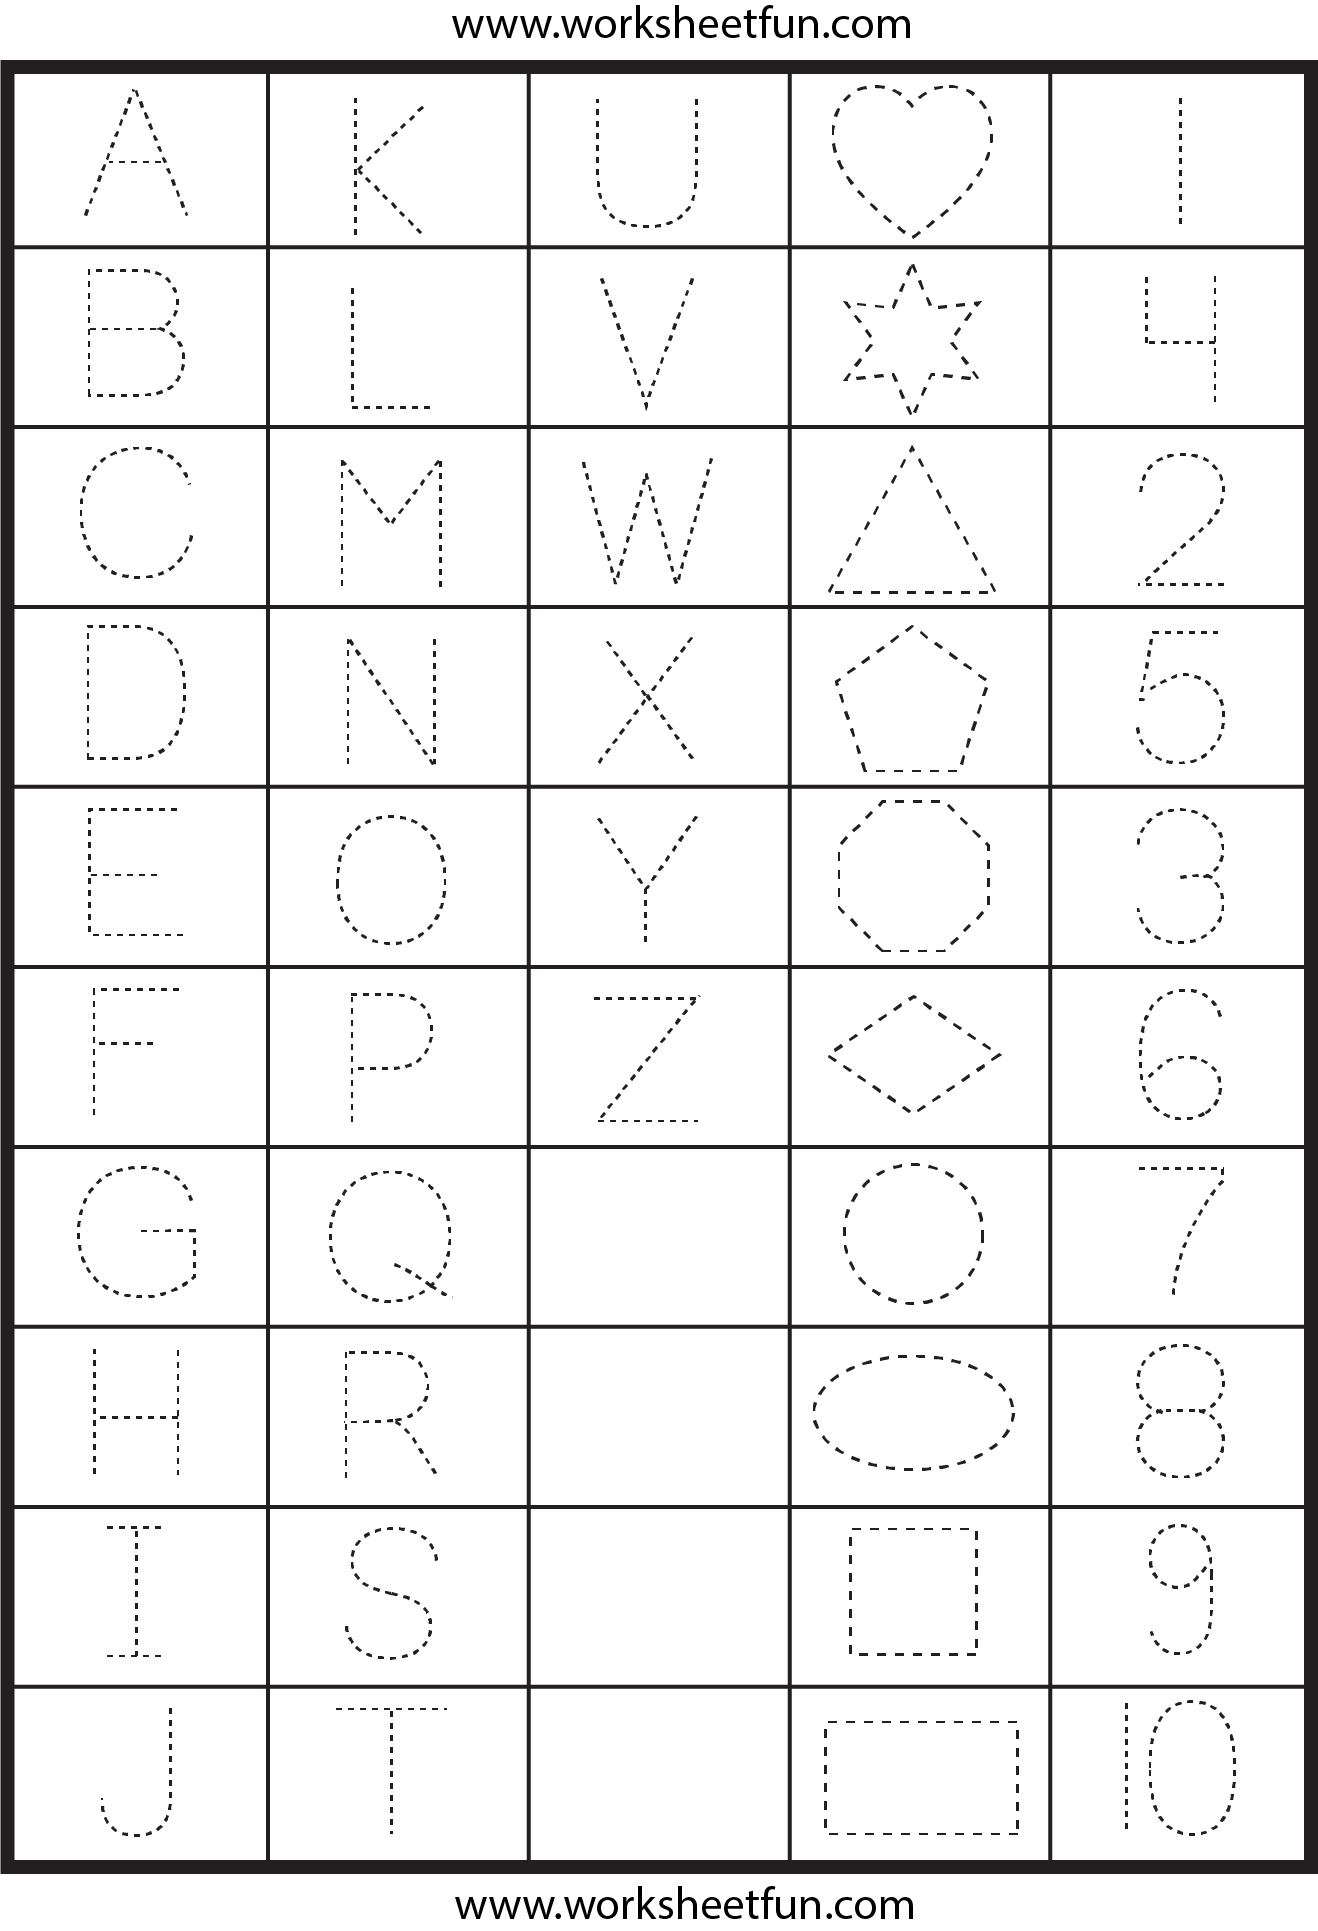 Worksheets Pre K Alphabet Tracing Worksheets letters numbers and shapes tracing worksheet preschool worksheet